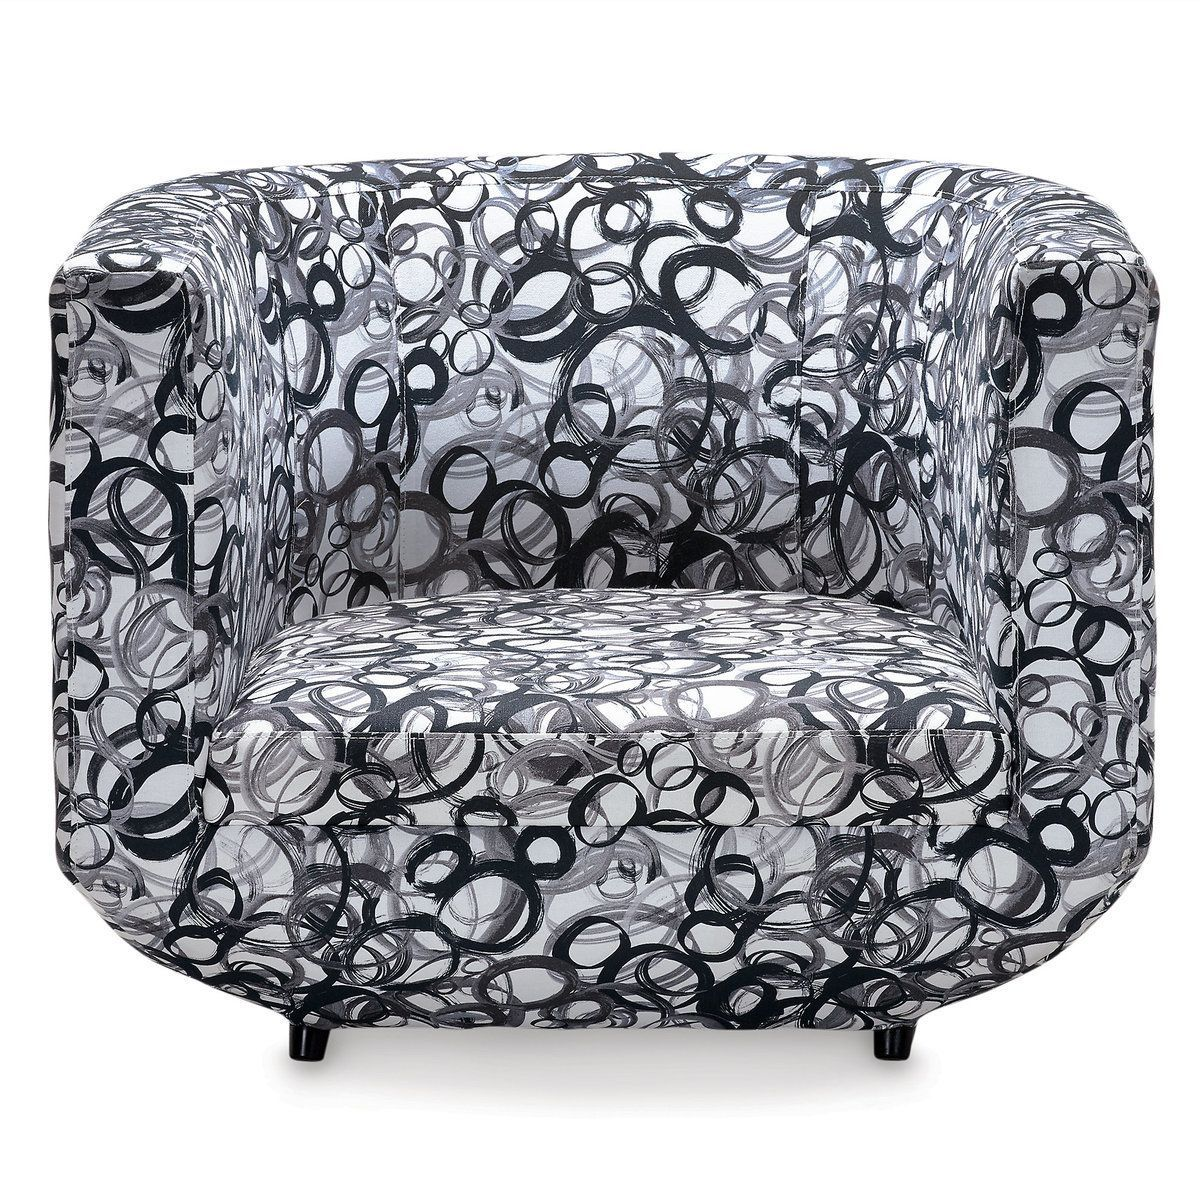 Mickey mouse having a ball chair by ethan allen in interior